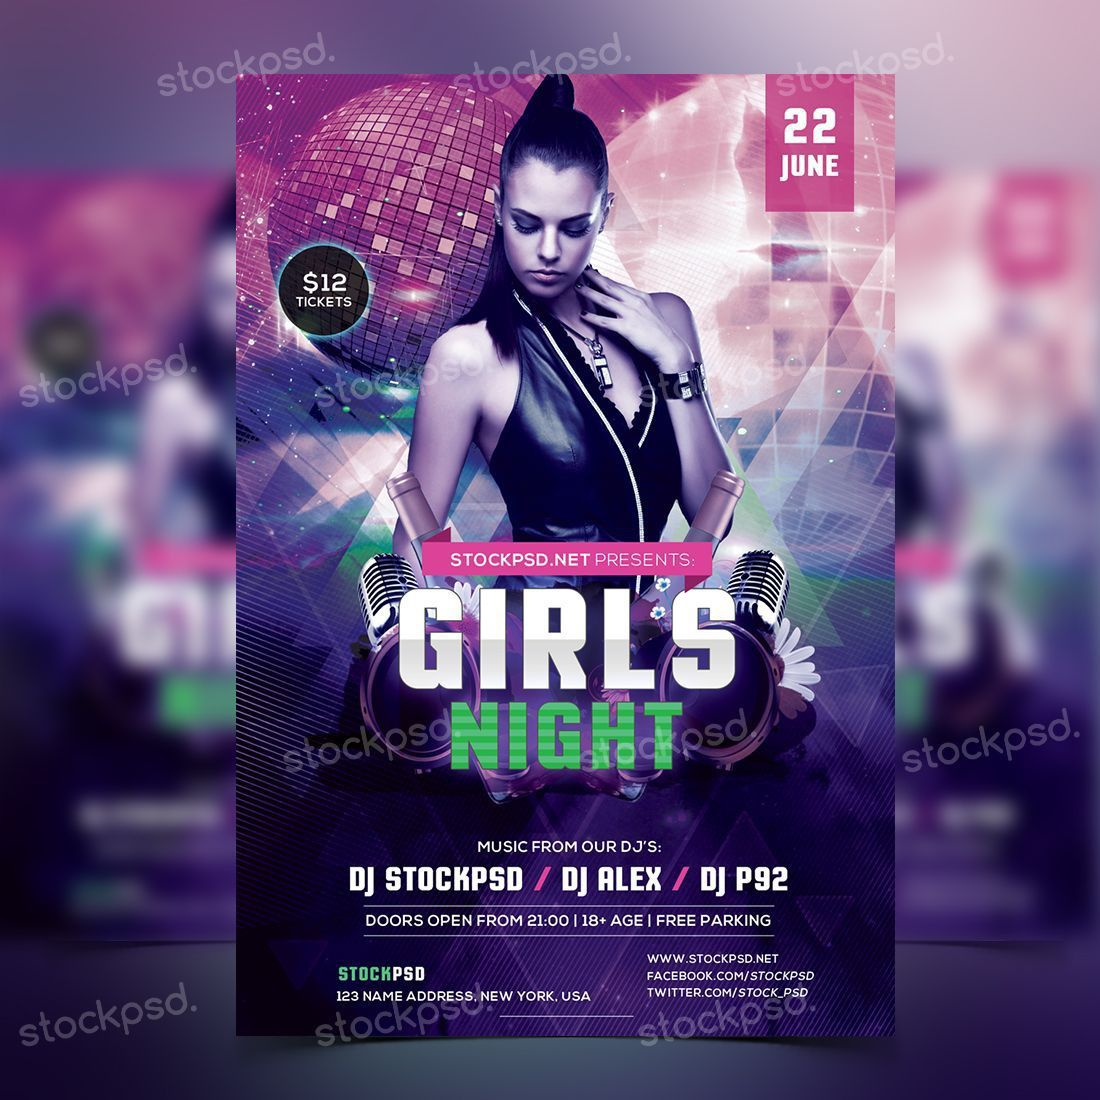 005 Beautiful Party Flyer Template Free Photoshop High Definition  Birthday Psd Masquerade -Full